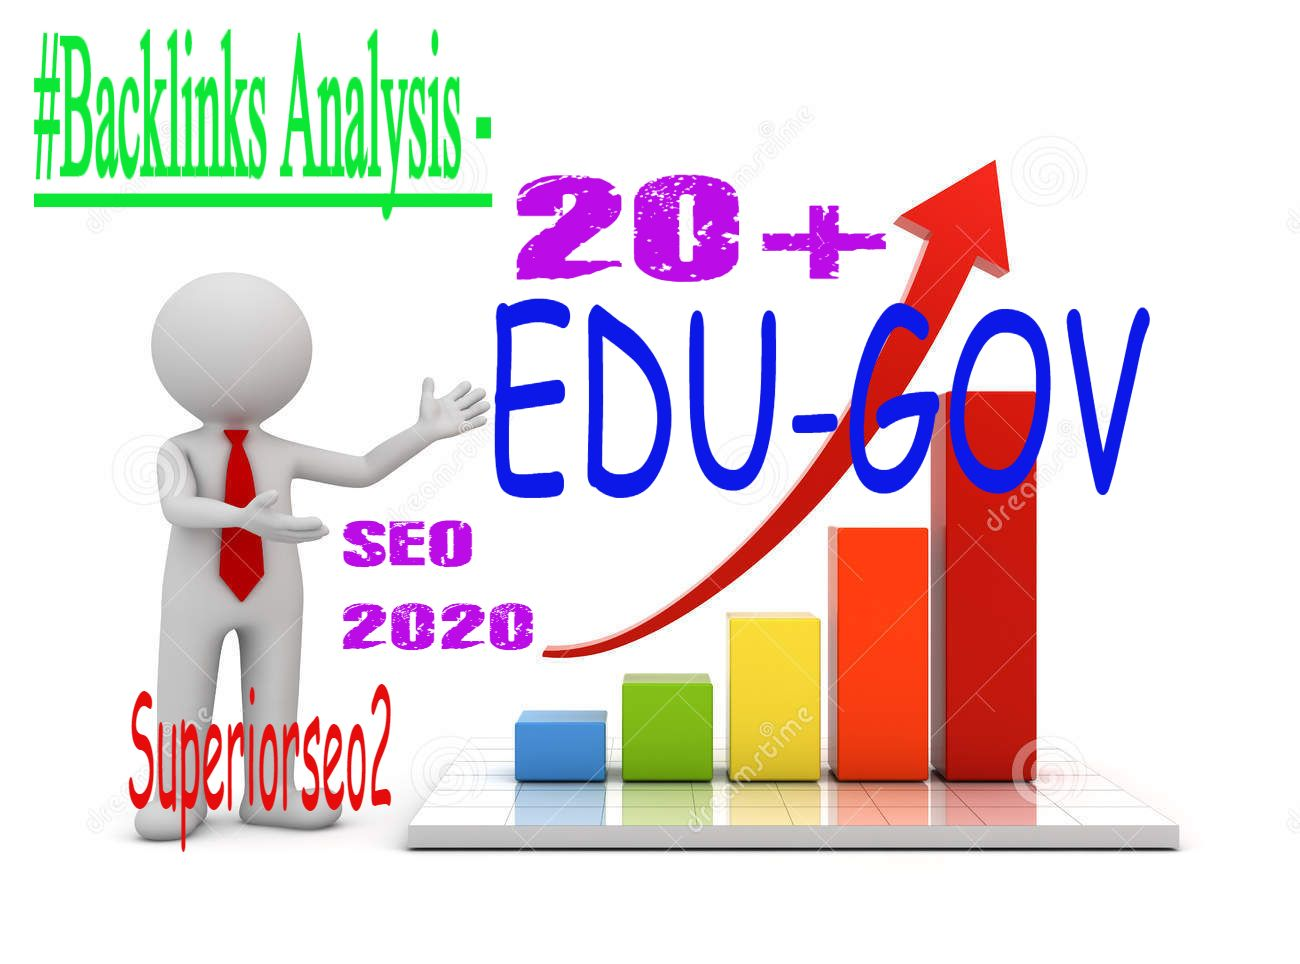 Build 21 US Based EDU. GOV Authority Safe SEO Profile Backlinks